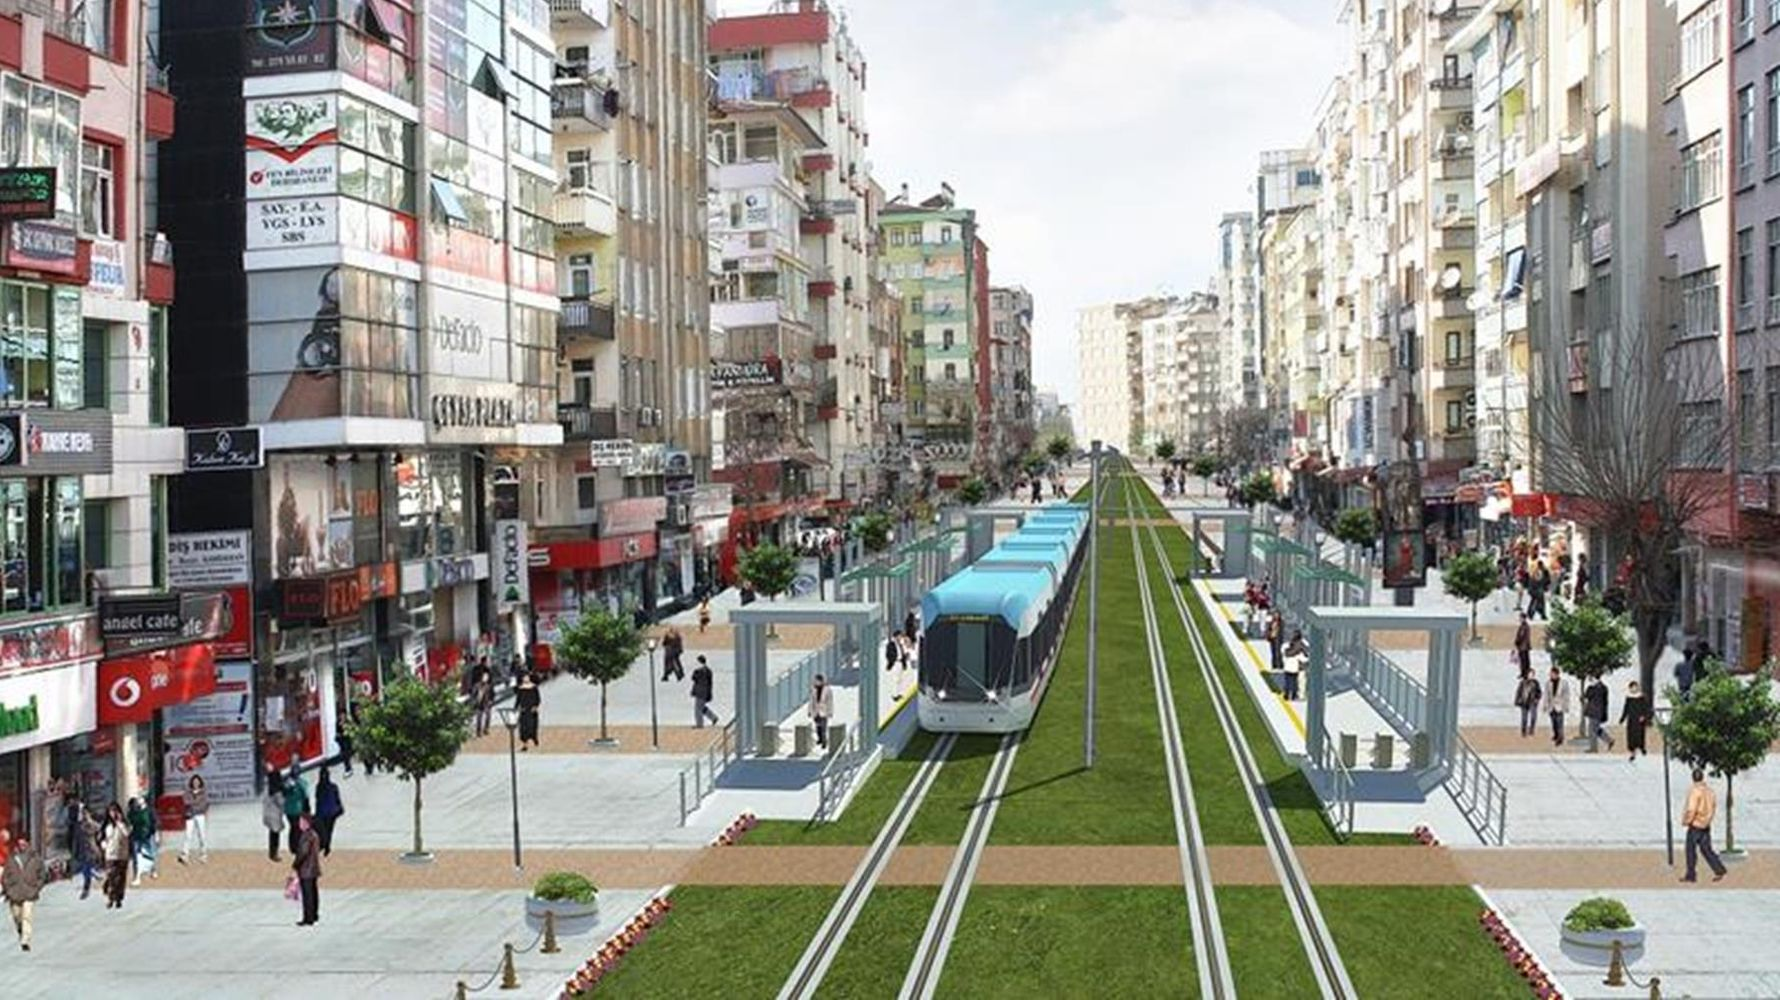 The first stage in diyarbakir light rail system project is complete